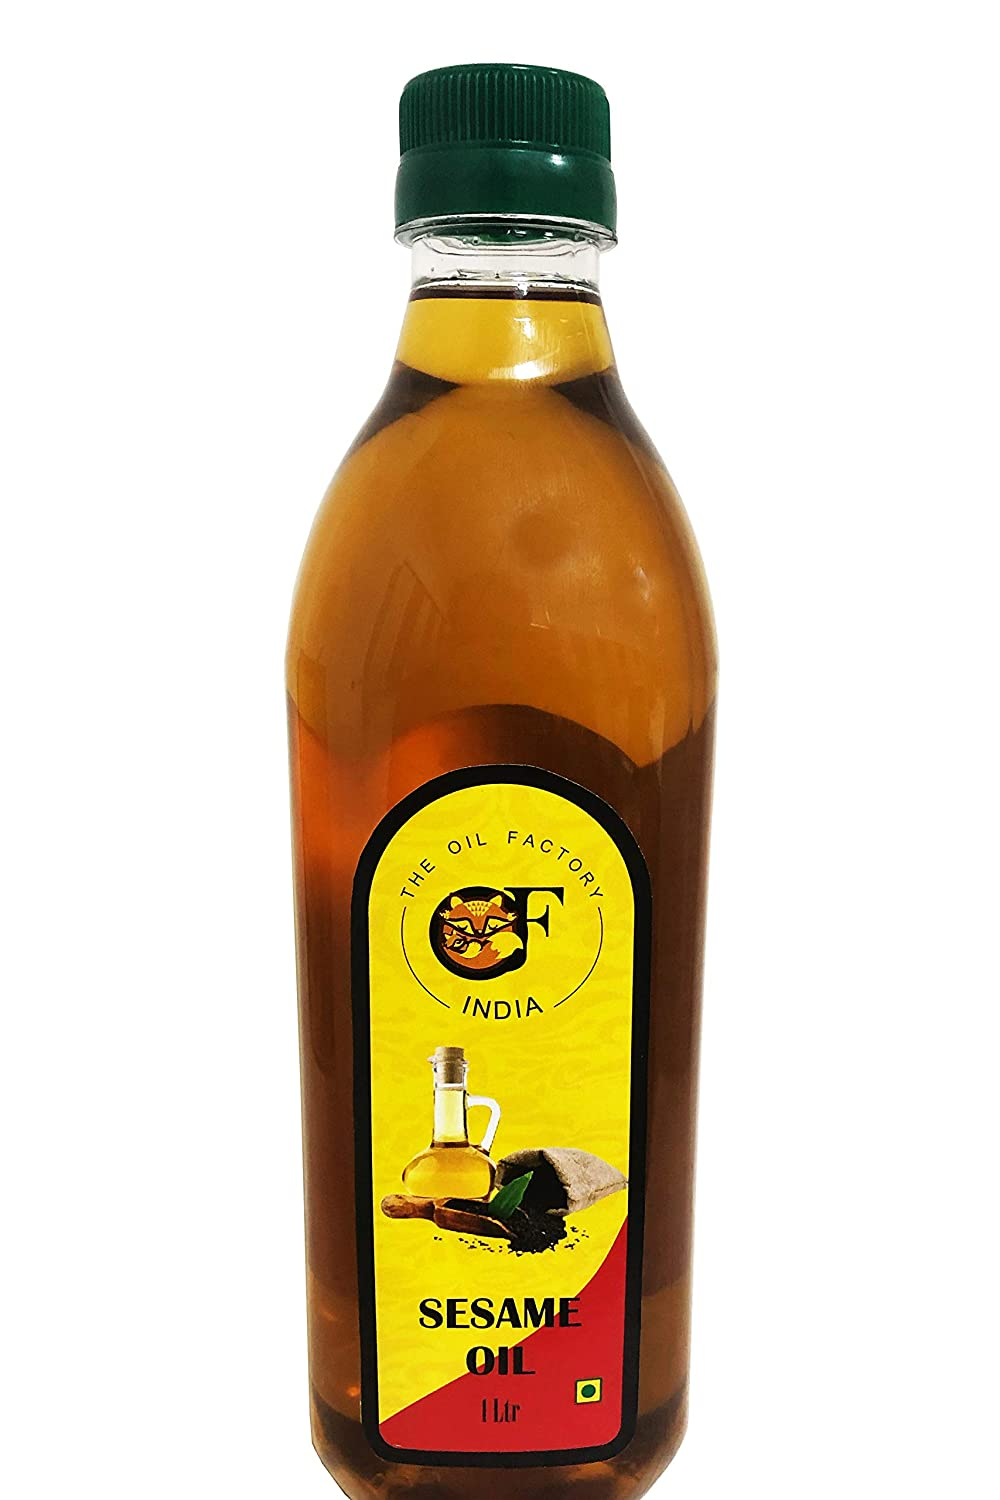 The Oil Factory Cold Pressed sesame oil